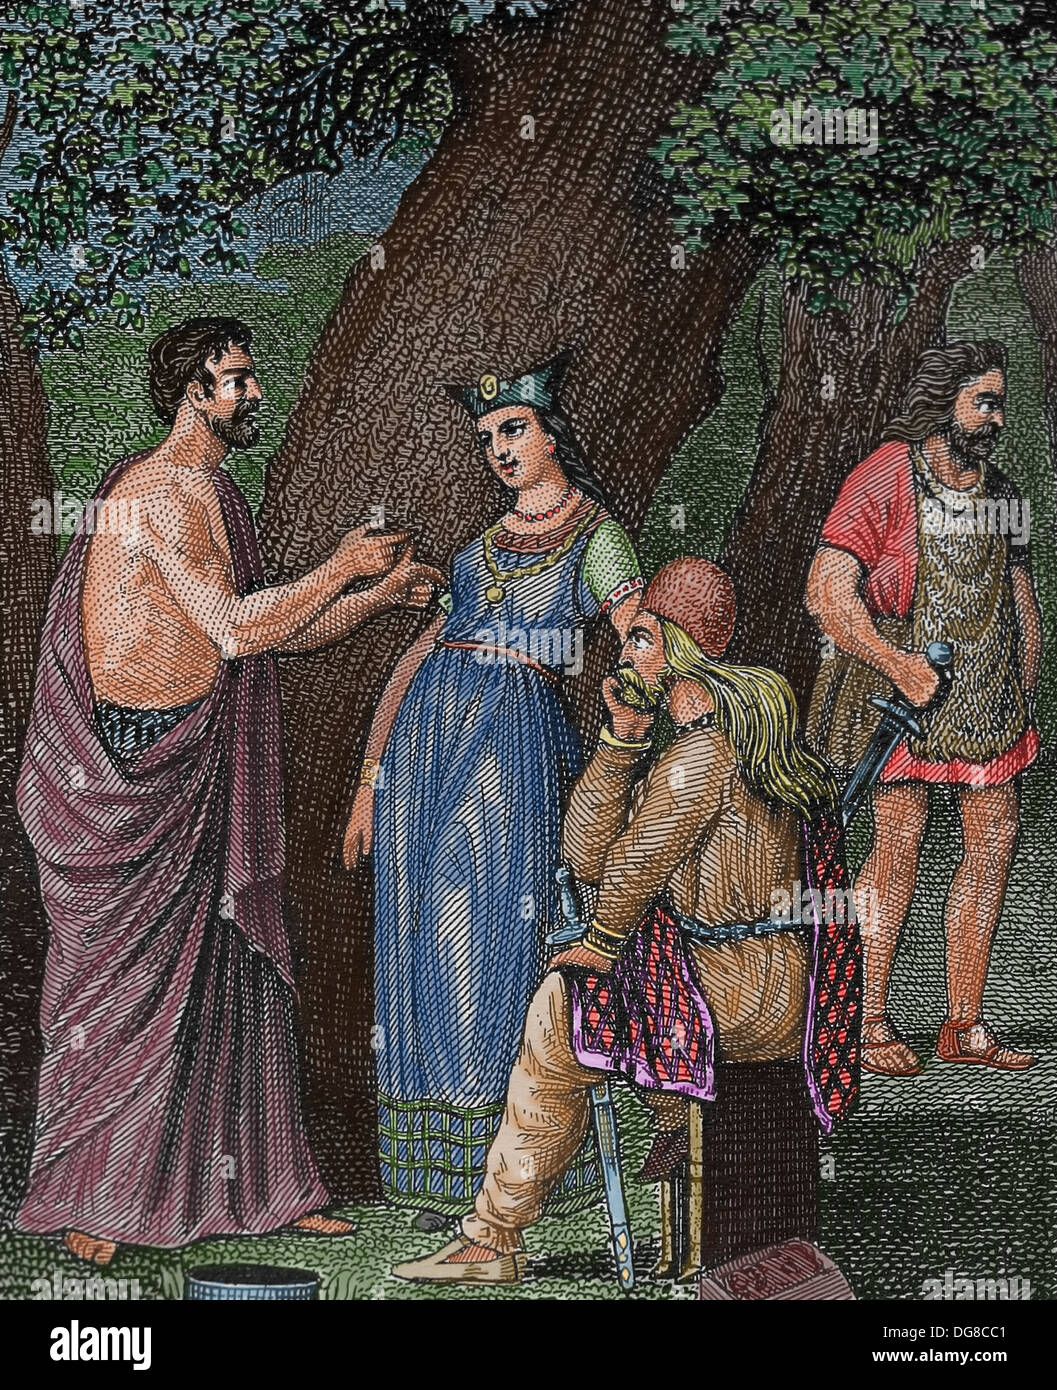 Celtic Tribes. Gaul. Gallia Celtica. Engraving. (Later colouration) - Stock Image